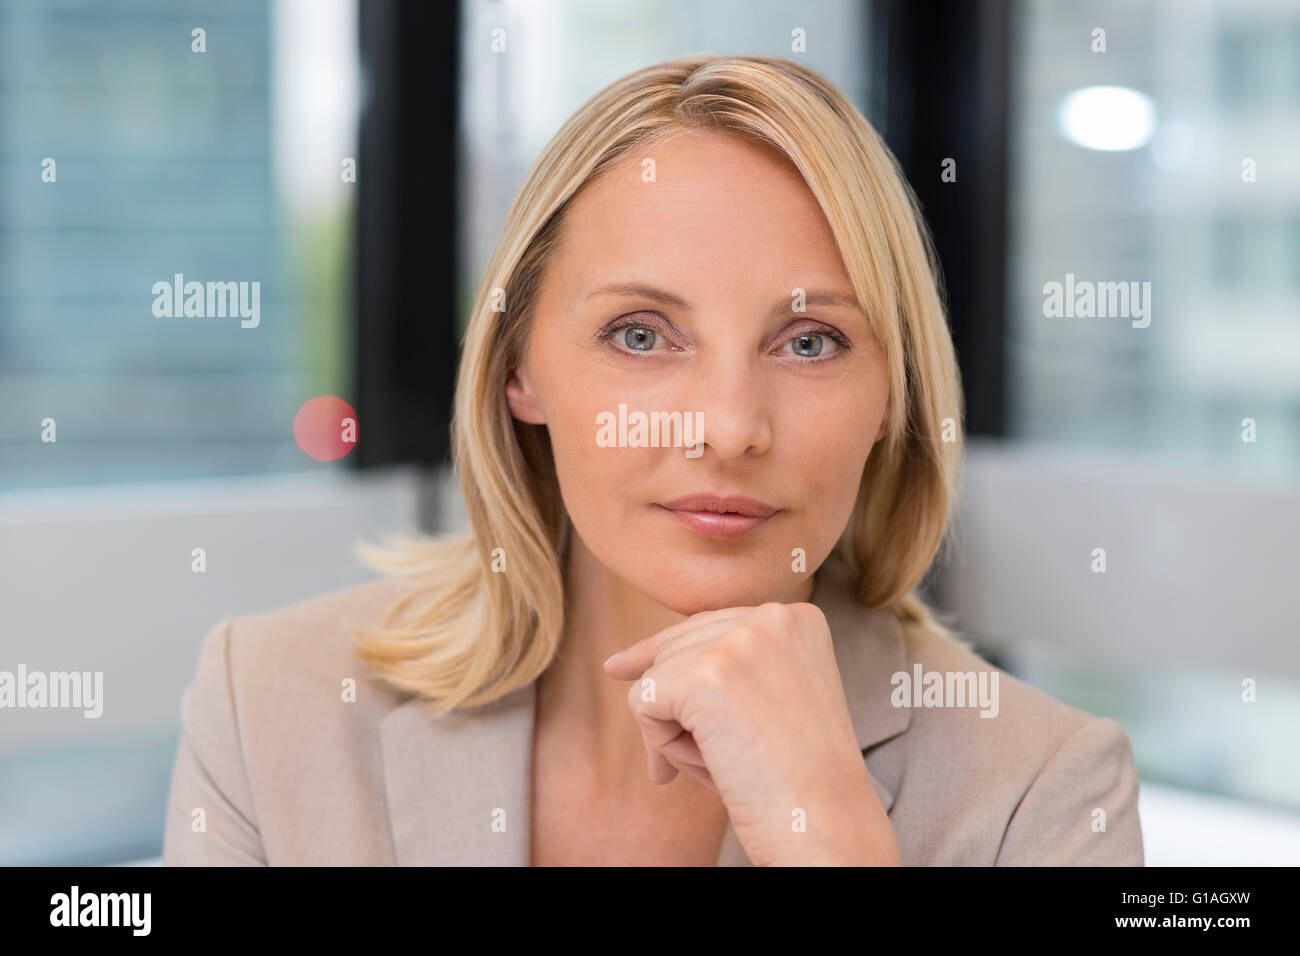 Portrait of businesswoman in modern office. Building in background. Looking at camera Stock Photo